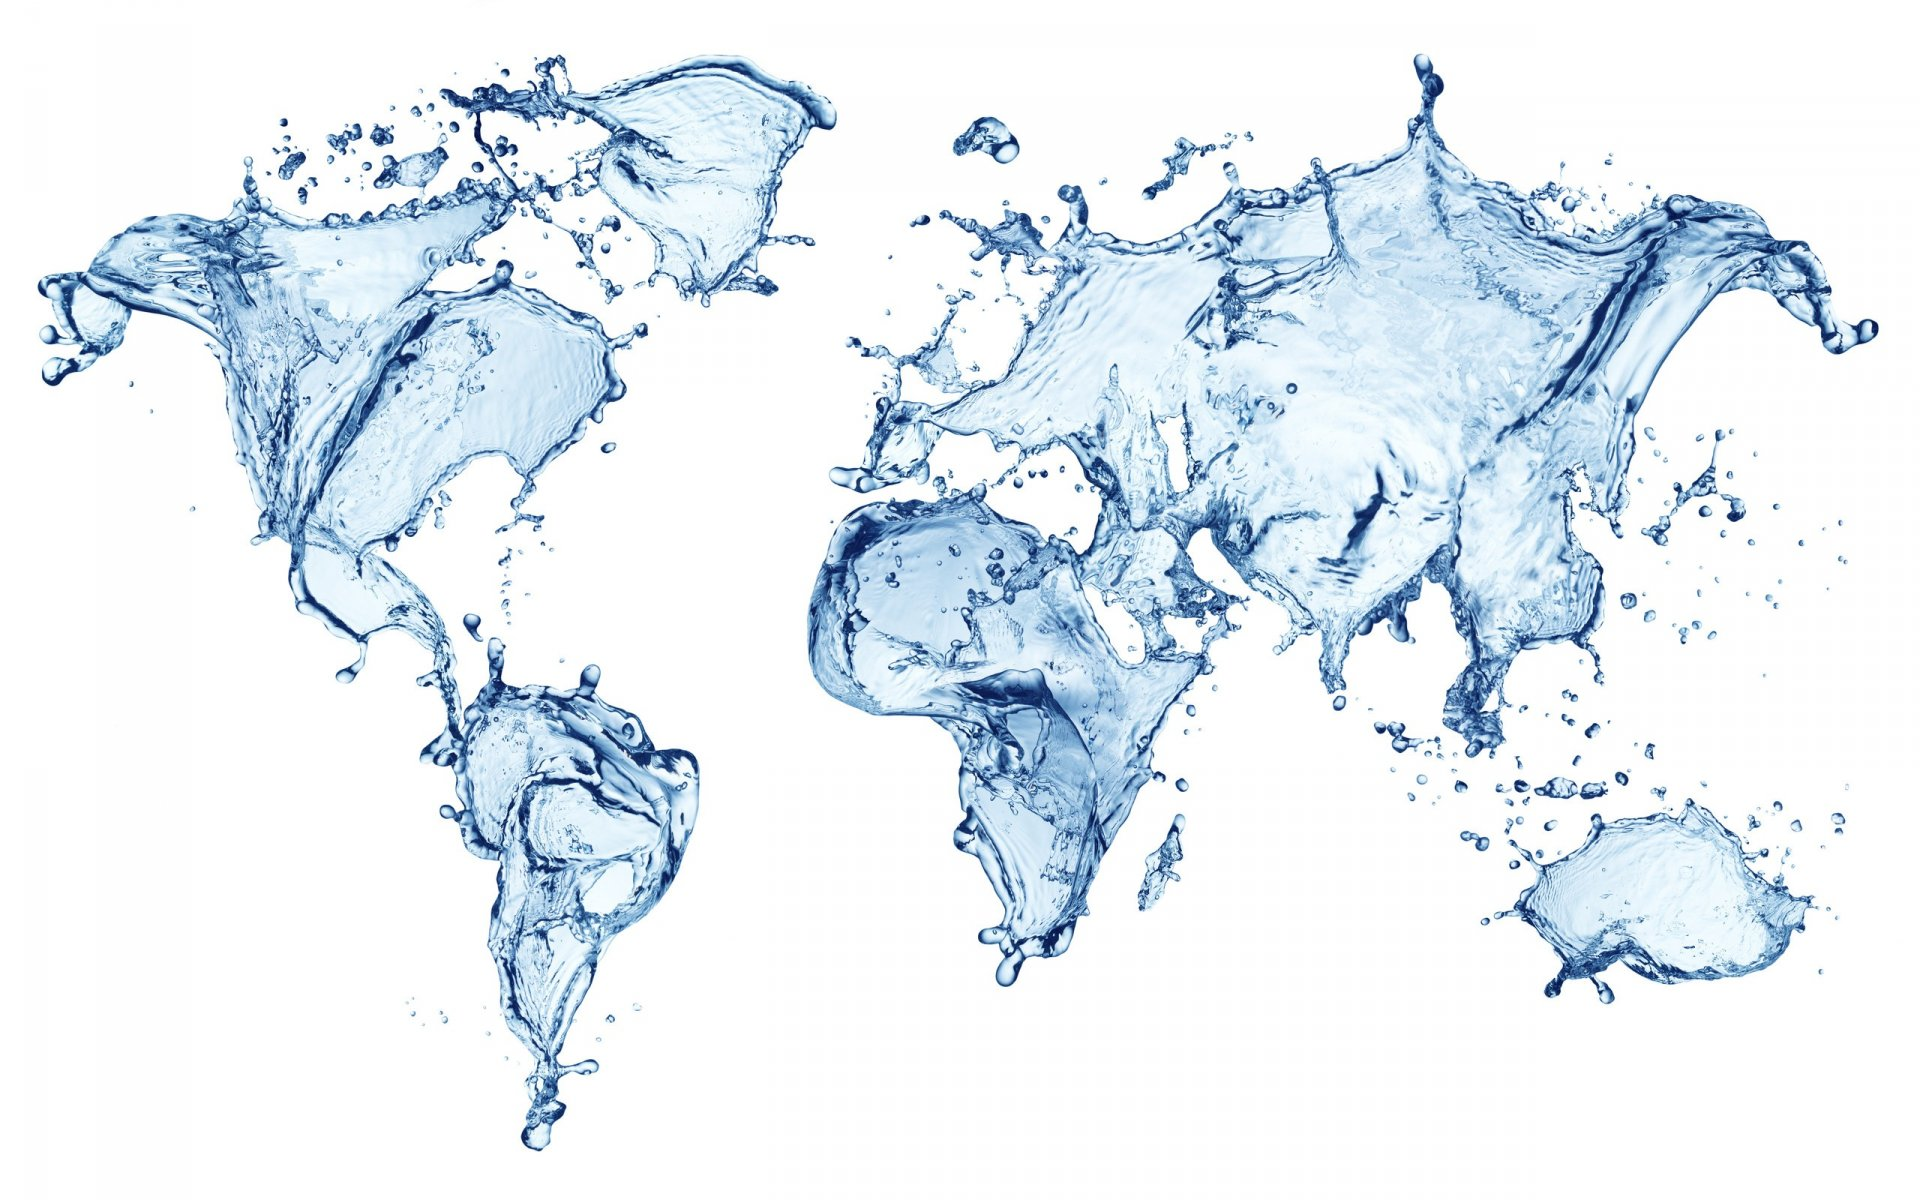 1920x1200 world maps water abstract desktop pc and mac wallpaper gumiabroncs Image collections